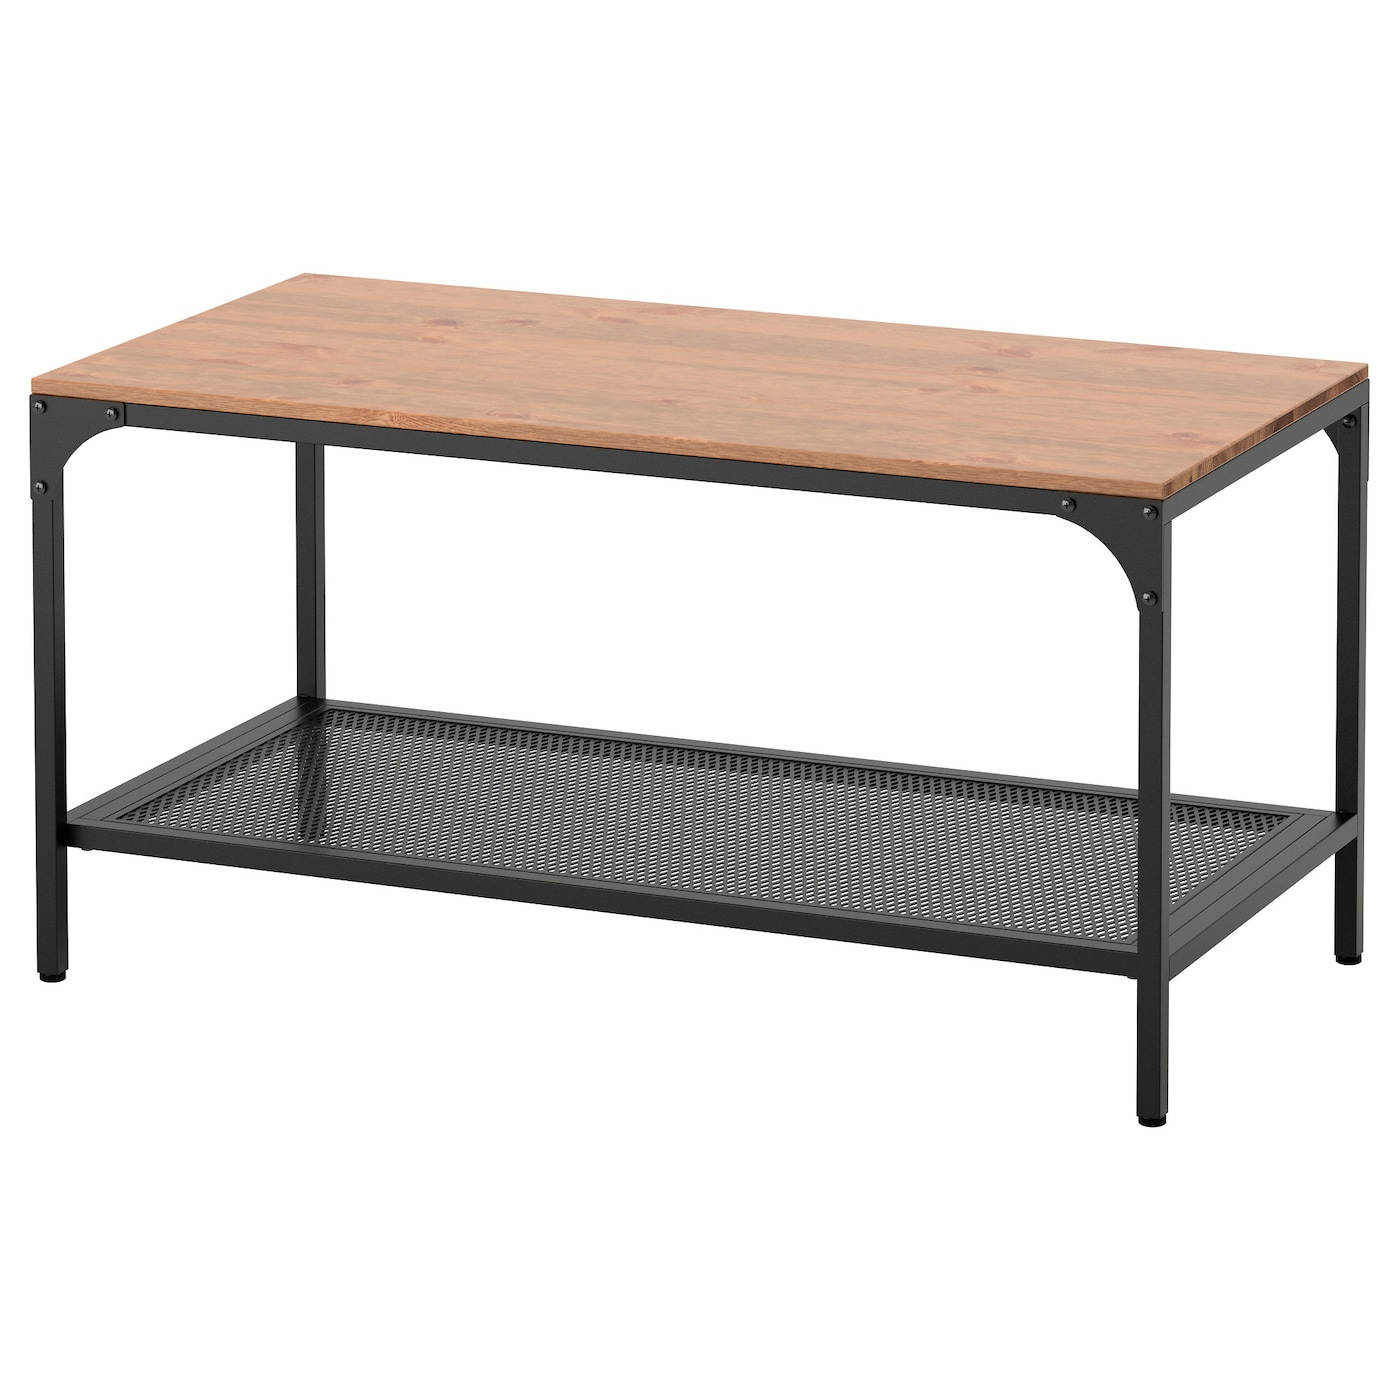 Fj llbo coffee table black 90x46 cm ikea Ikea coffee tables and end tables